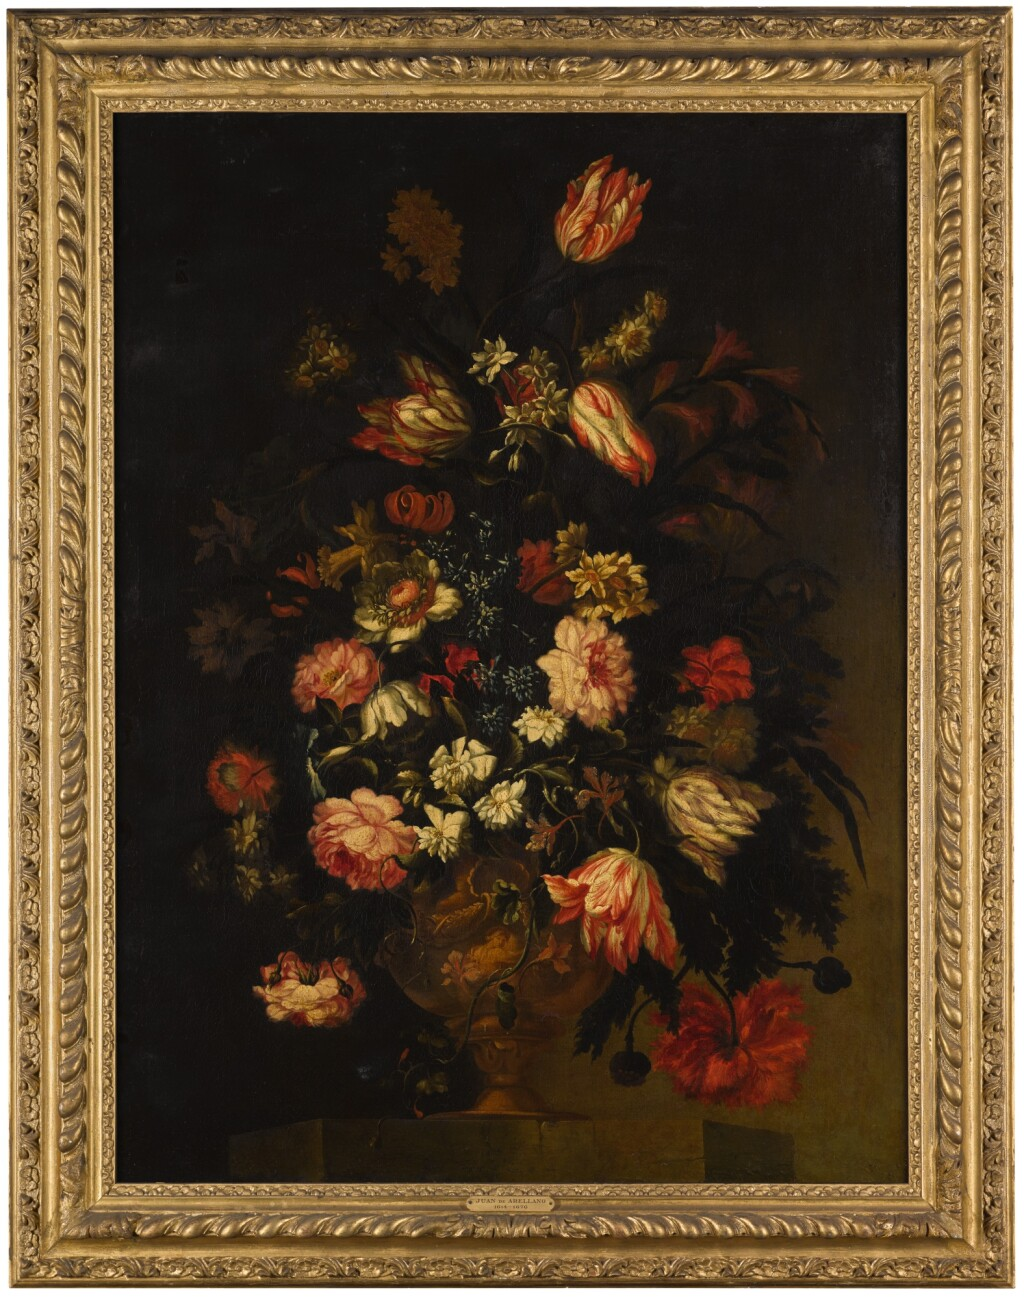 FRANCESCO MANTOVANO | Still life of flowers in an urn, including tulips, roses and poppies, all on a stone ledge